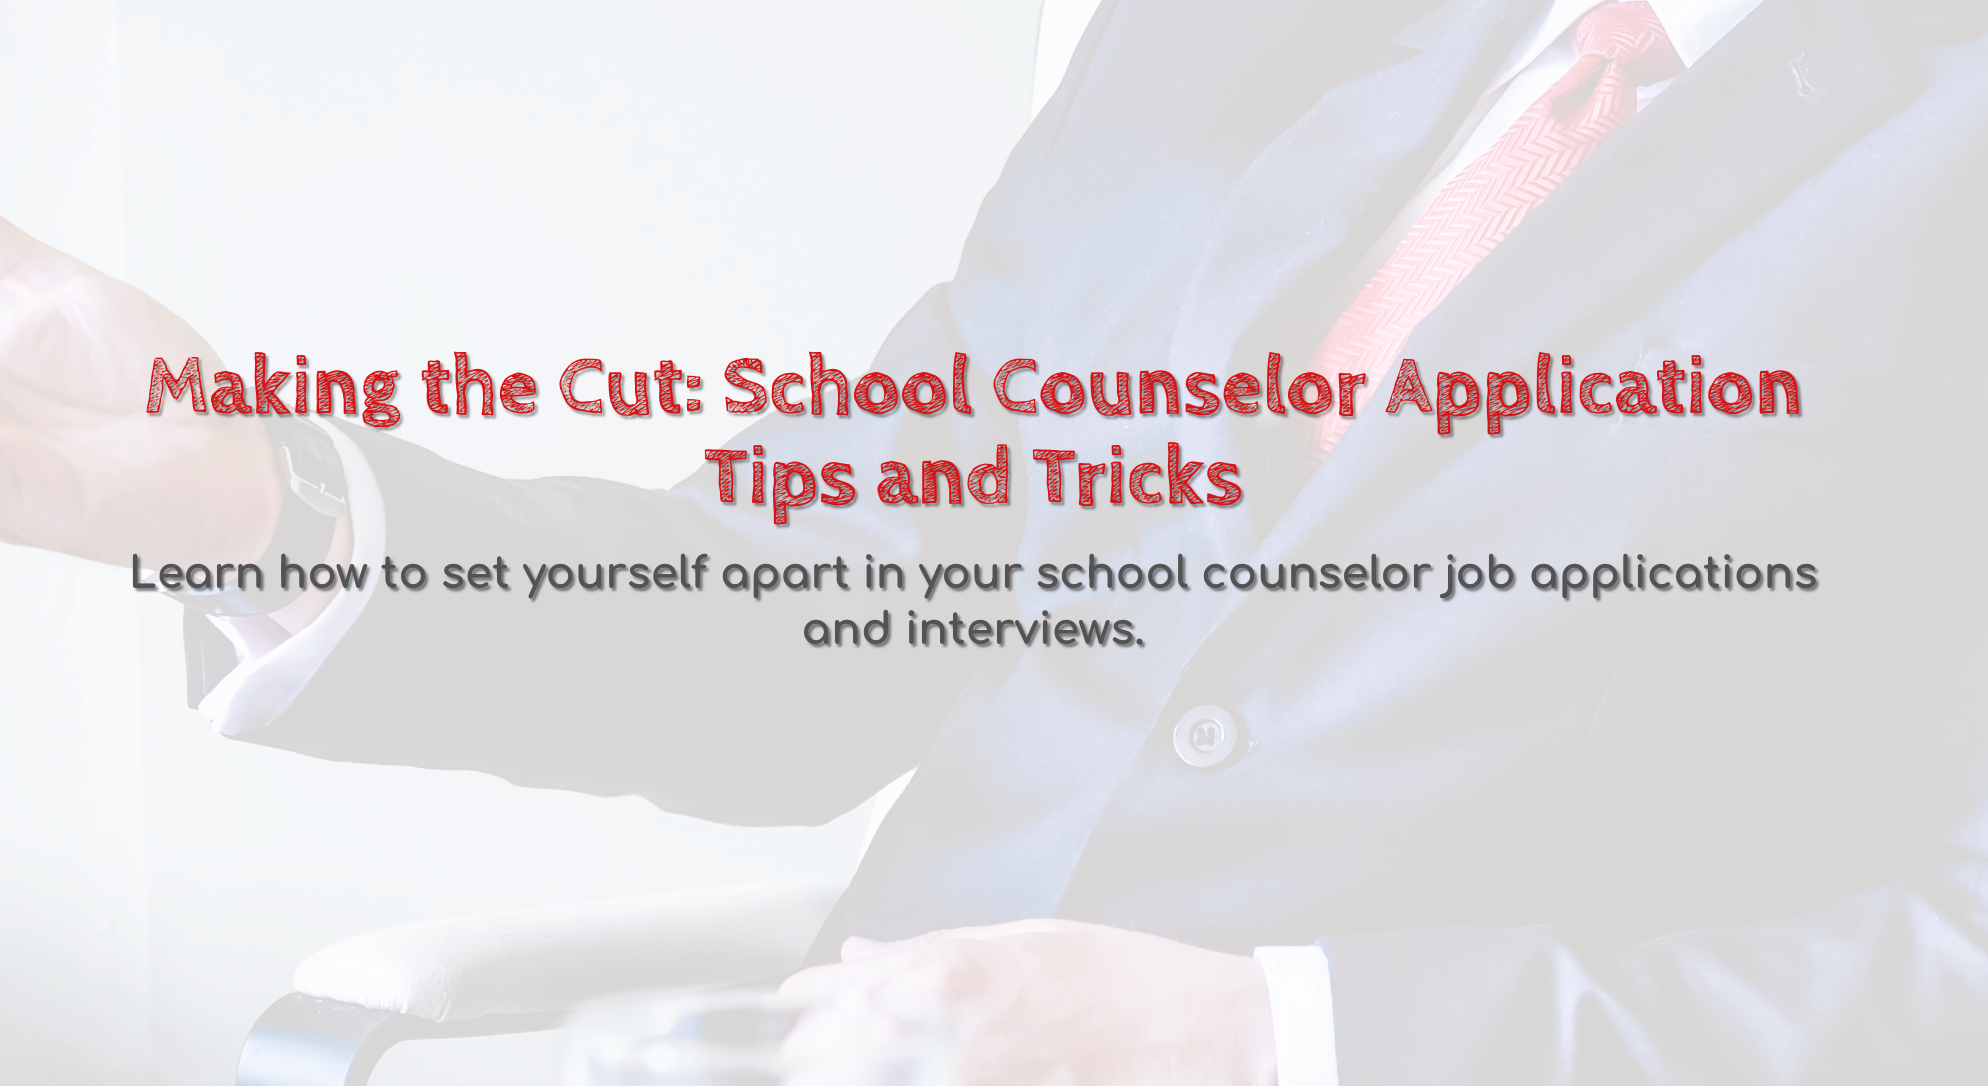 Making the Cut: School Counselor Application Tips and Tricks    Learn how to set yourself apart in your school counselor job applications and interviews.